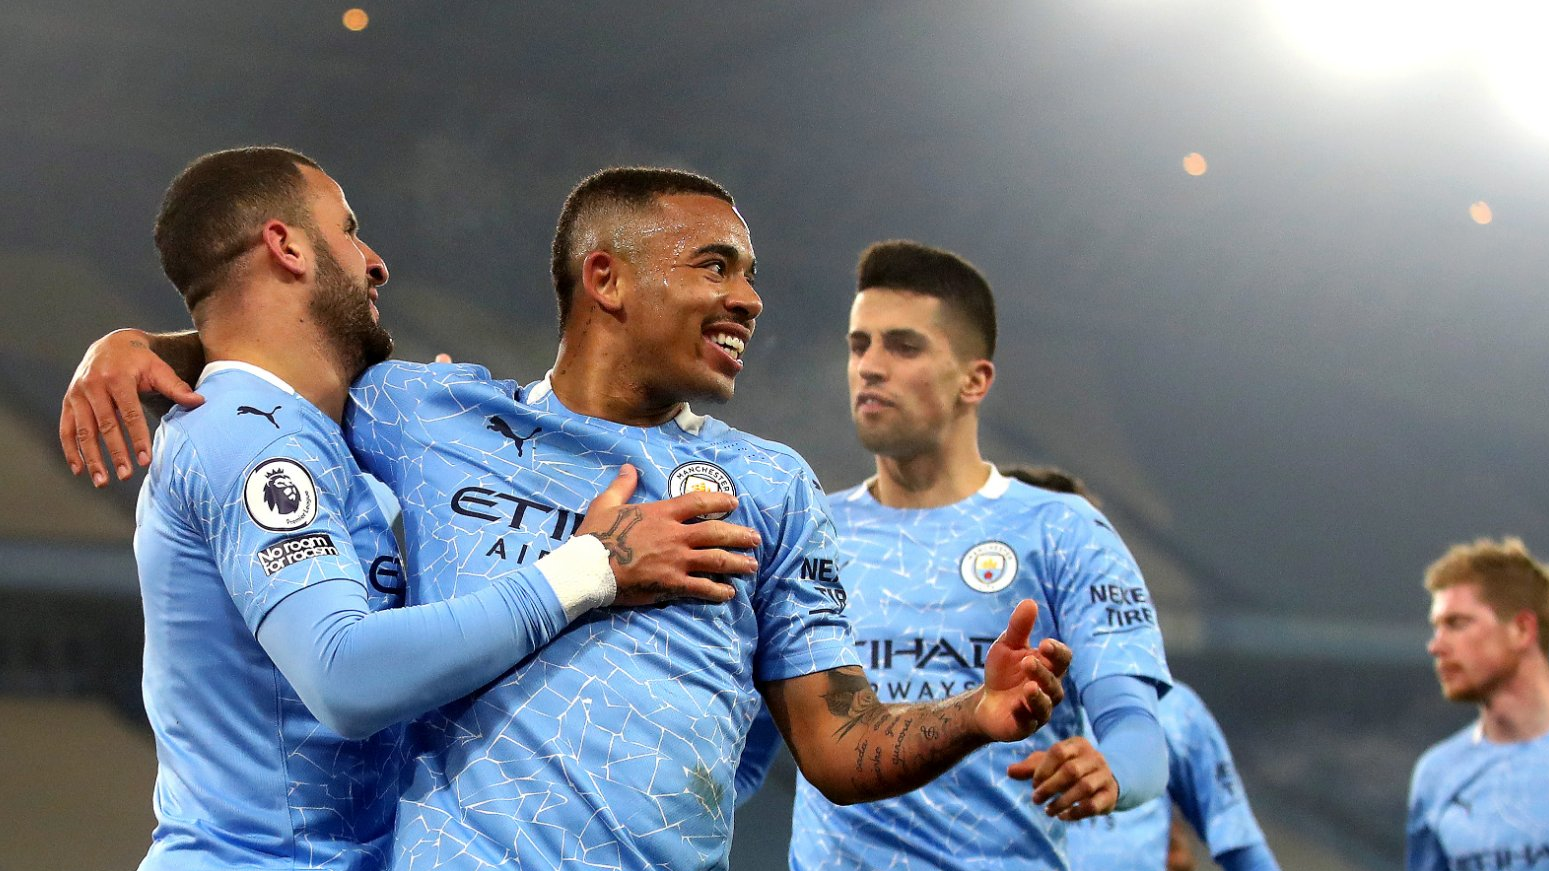 Siap-siap Man United, 3 Faktor Ini Bakal Buat Man City Pesta Gol